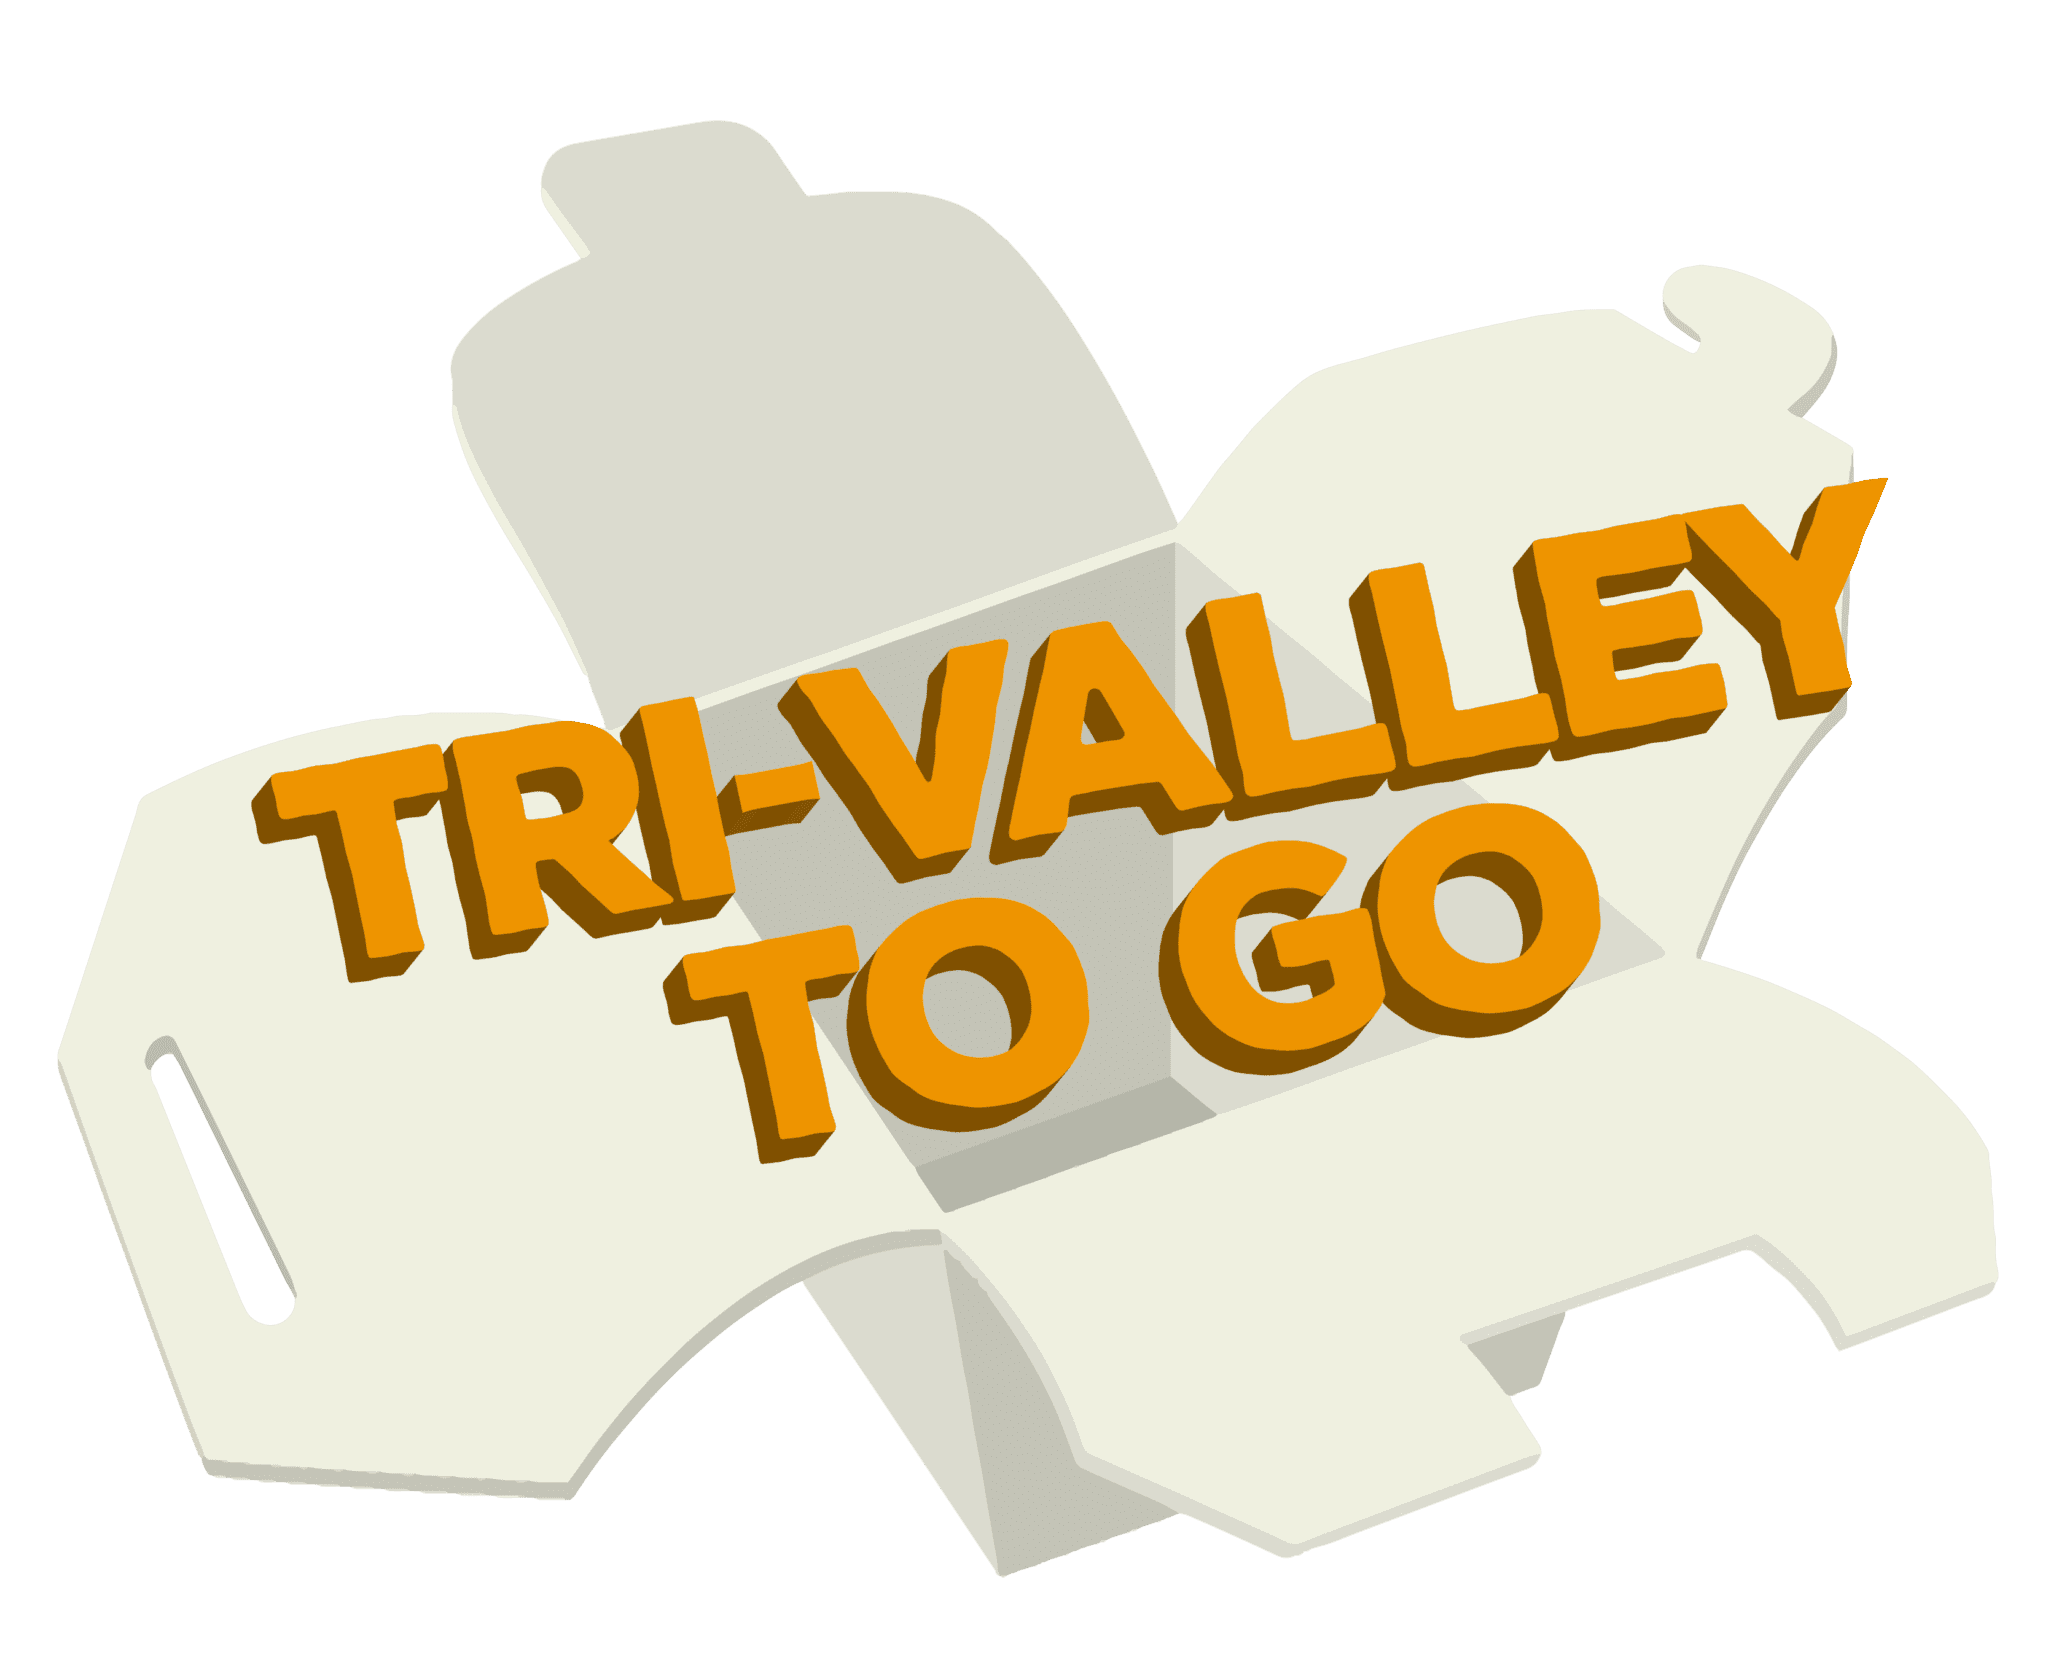 Tri-Valley To Go